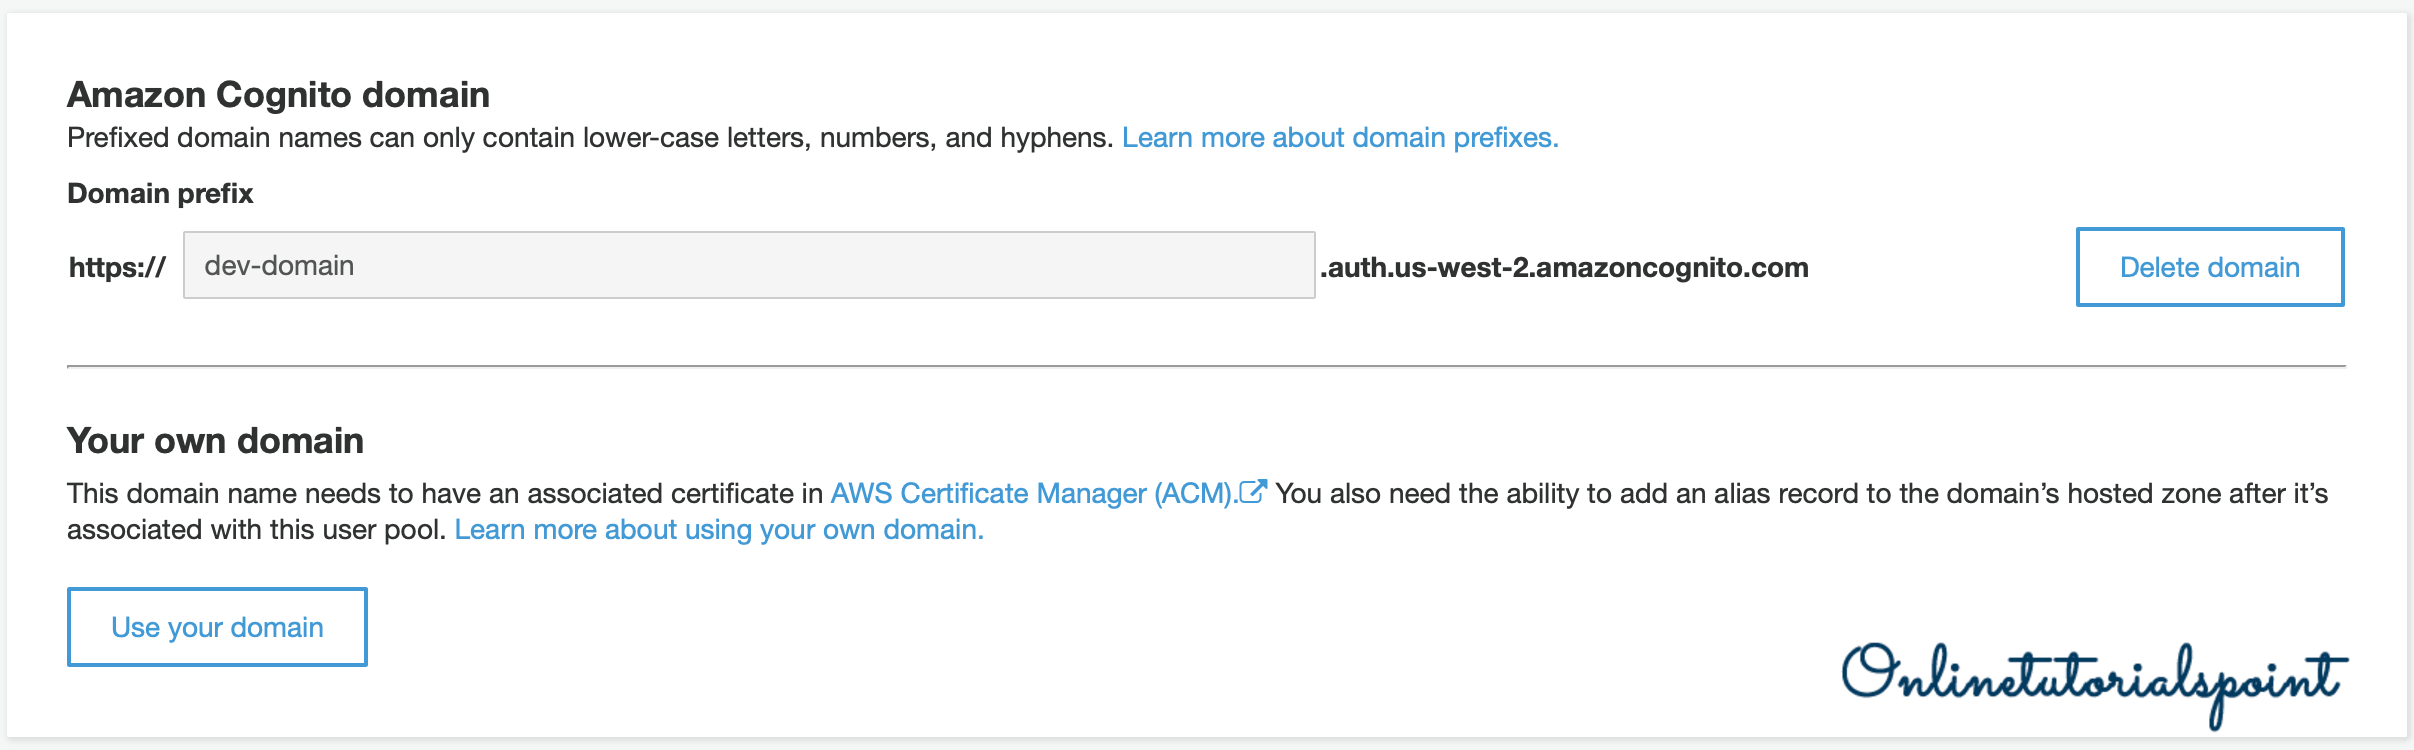 AWS SAM - Secure Api Gateway endpoints using CognitoUserPool4